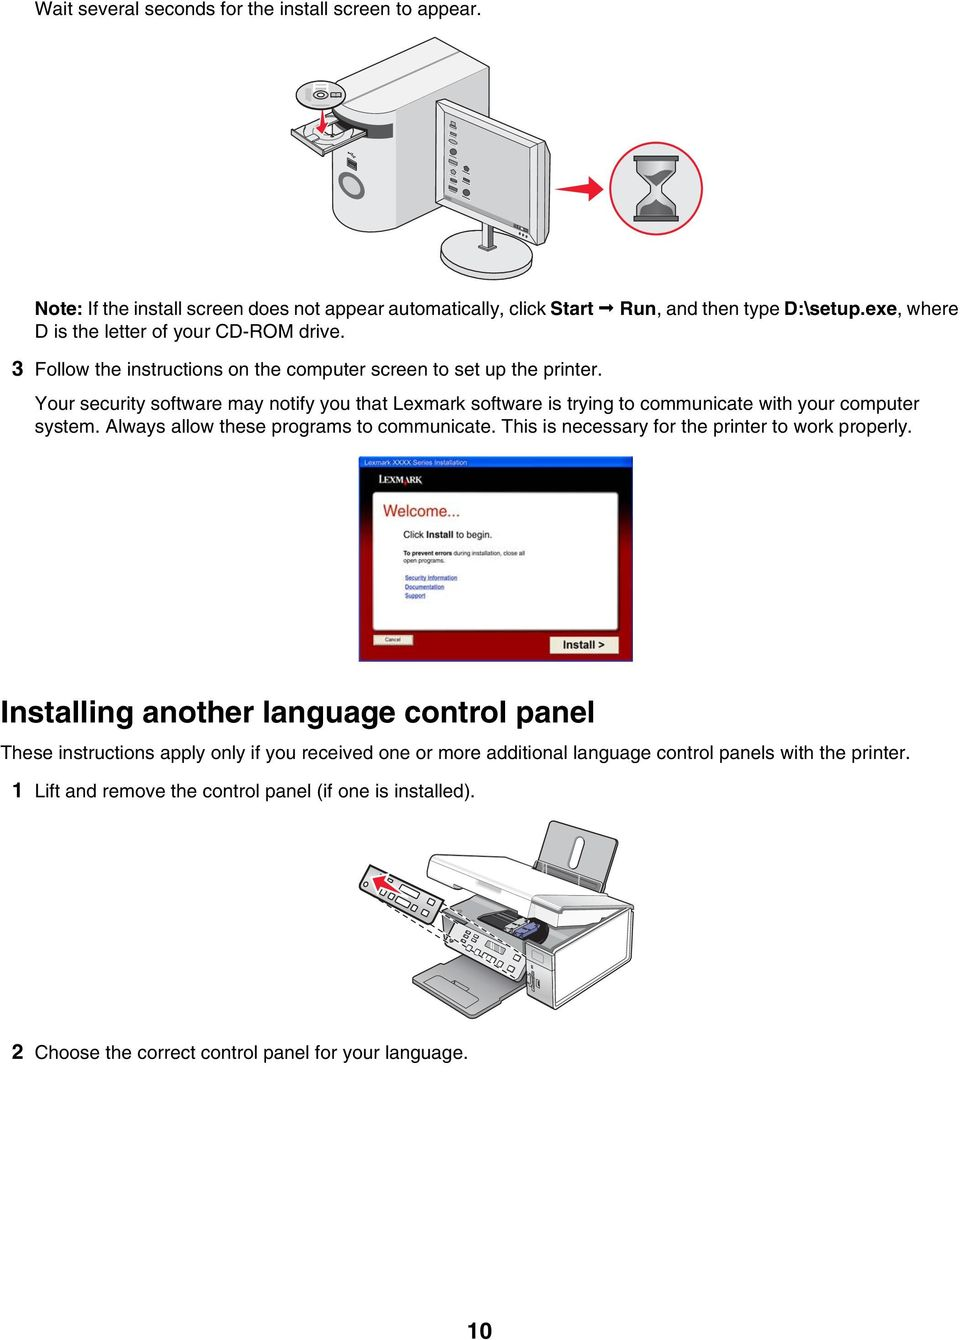 Your security software may notify you that Lexmark software is trying to communicate with your computer system. Always allow these programs to communicate.